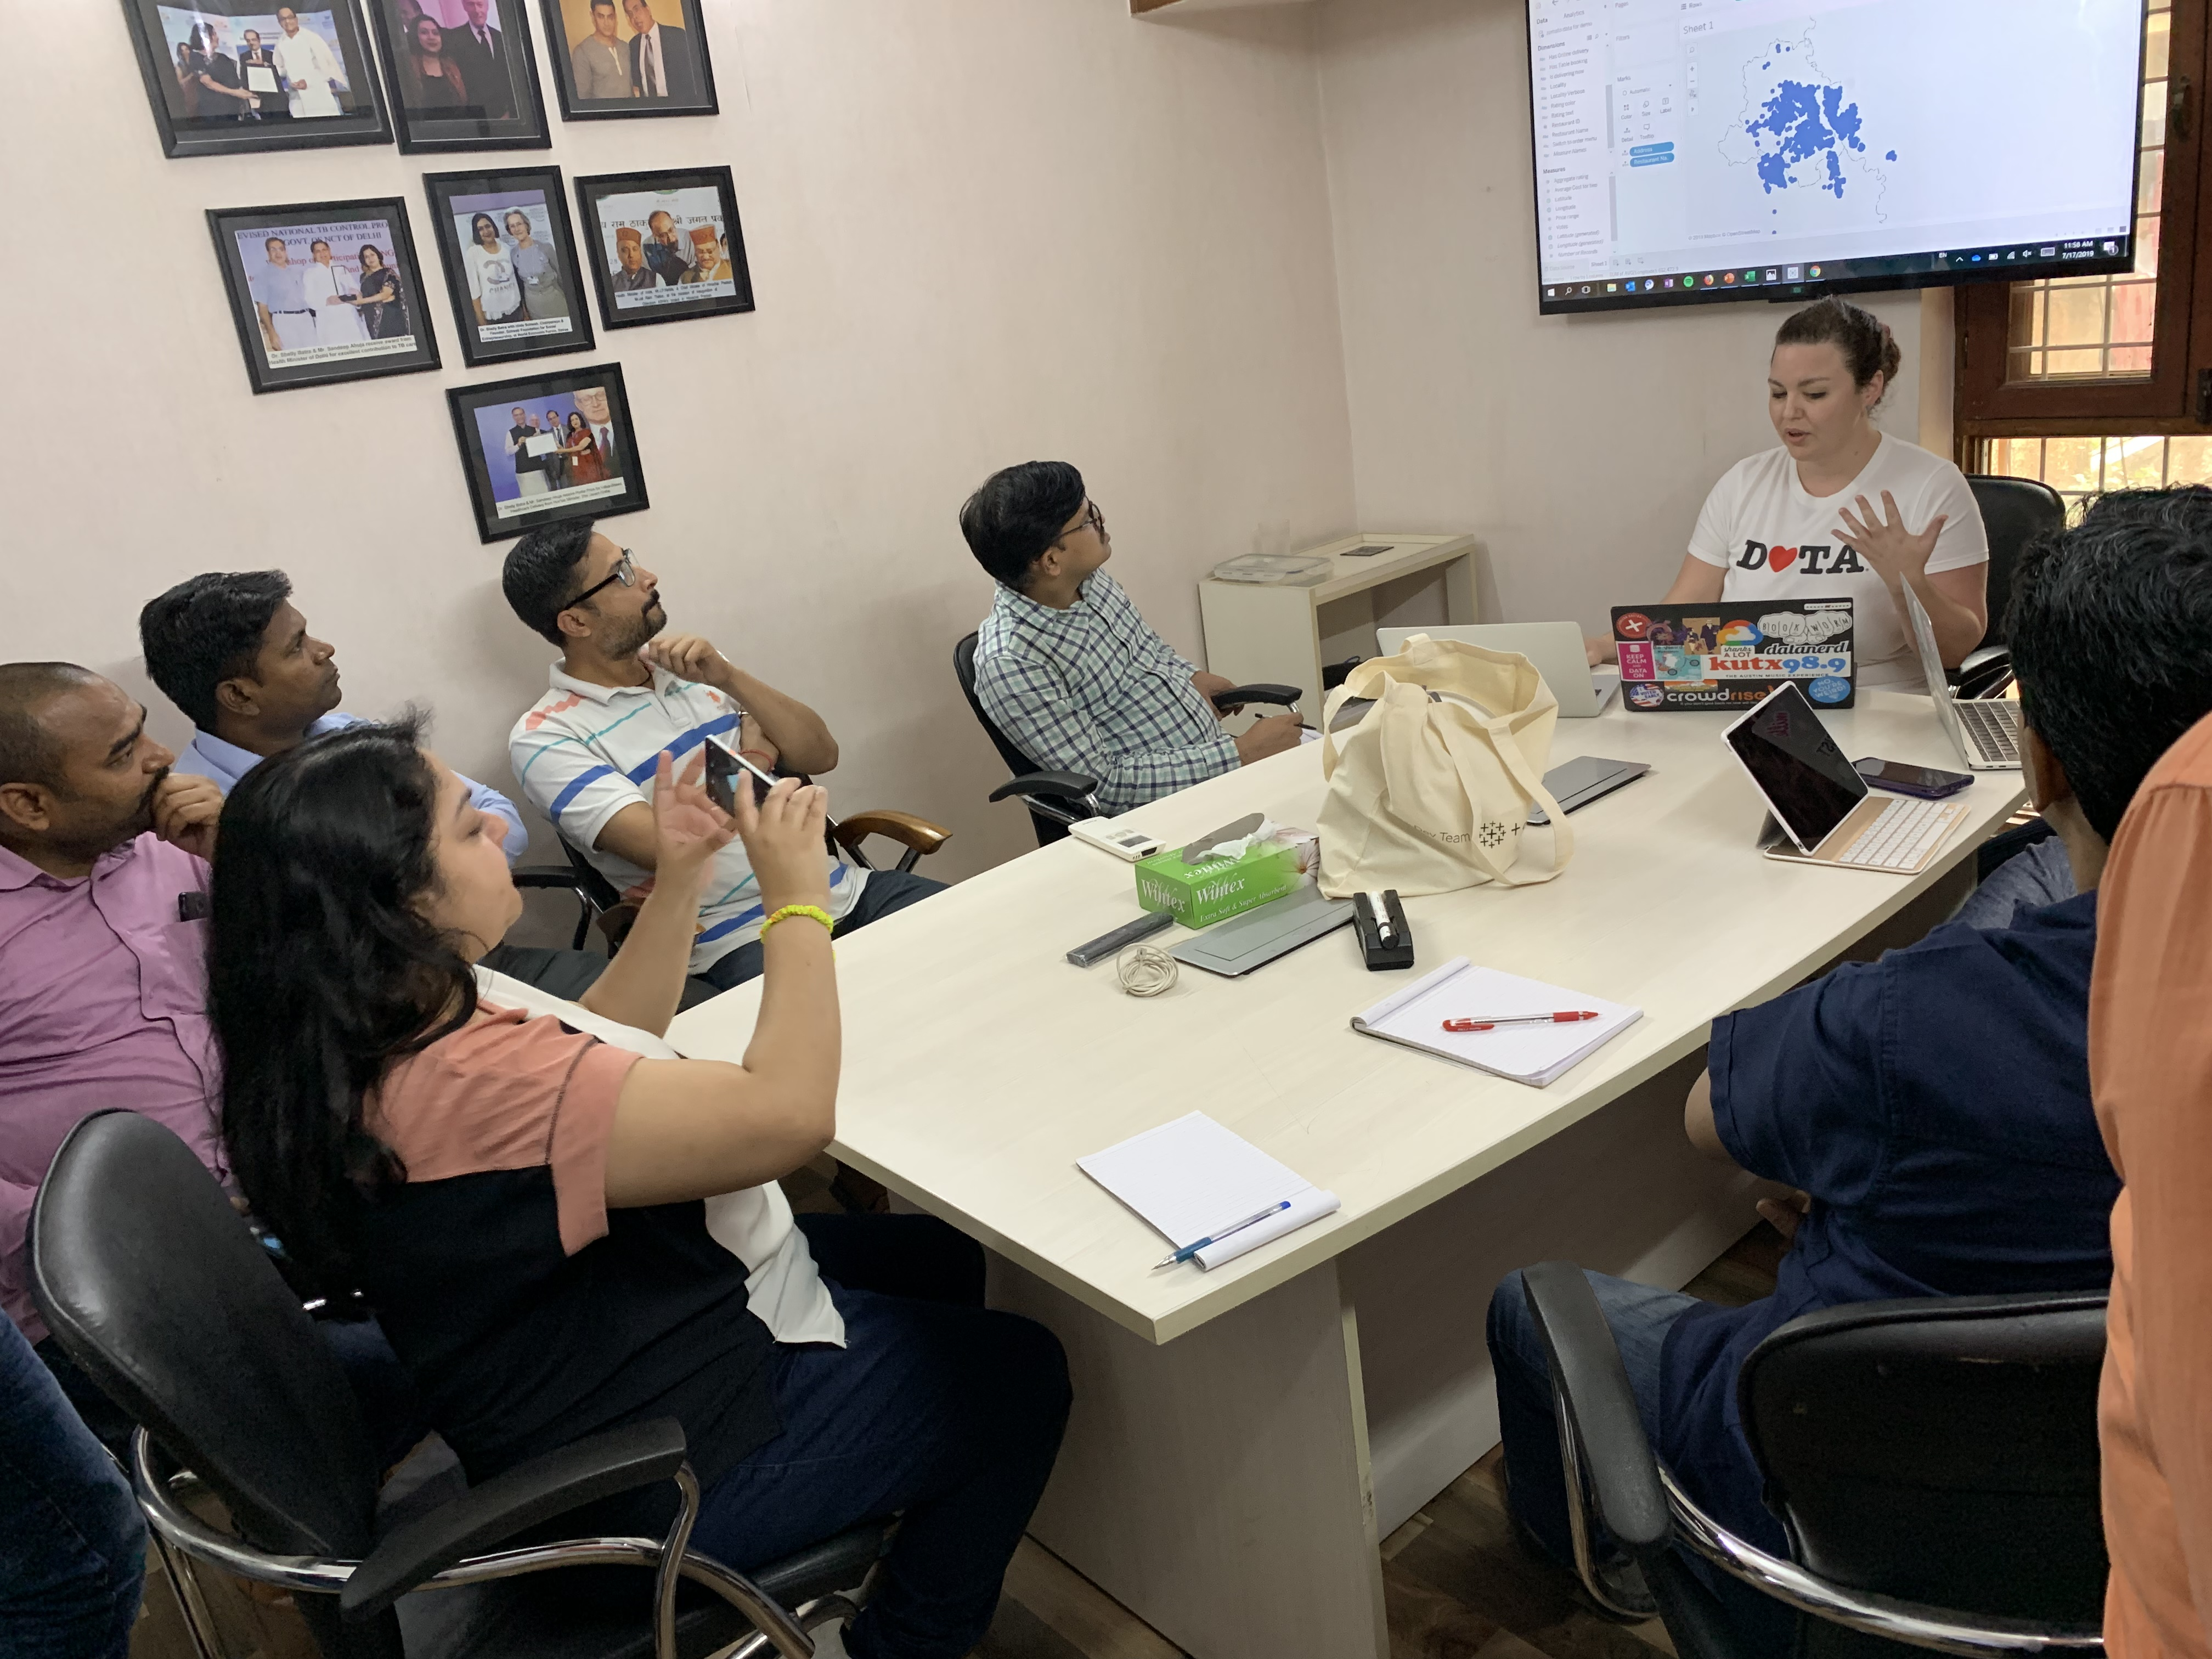 Tableau volunteer Lauren giving a demo of the Tableau software to Operation ASHA team members around a table who look on and take photos